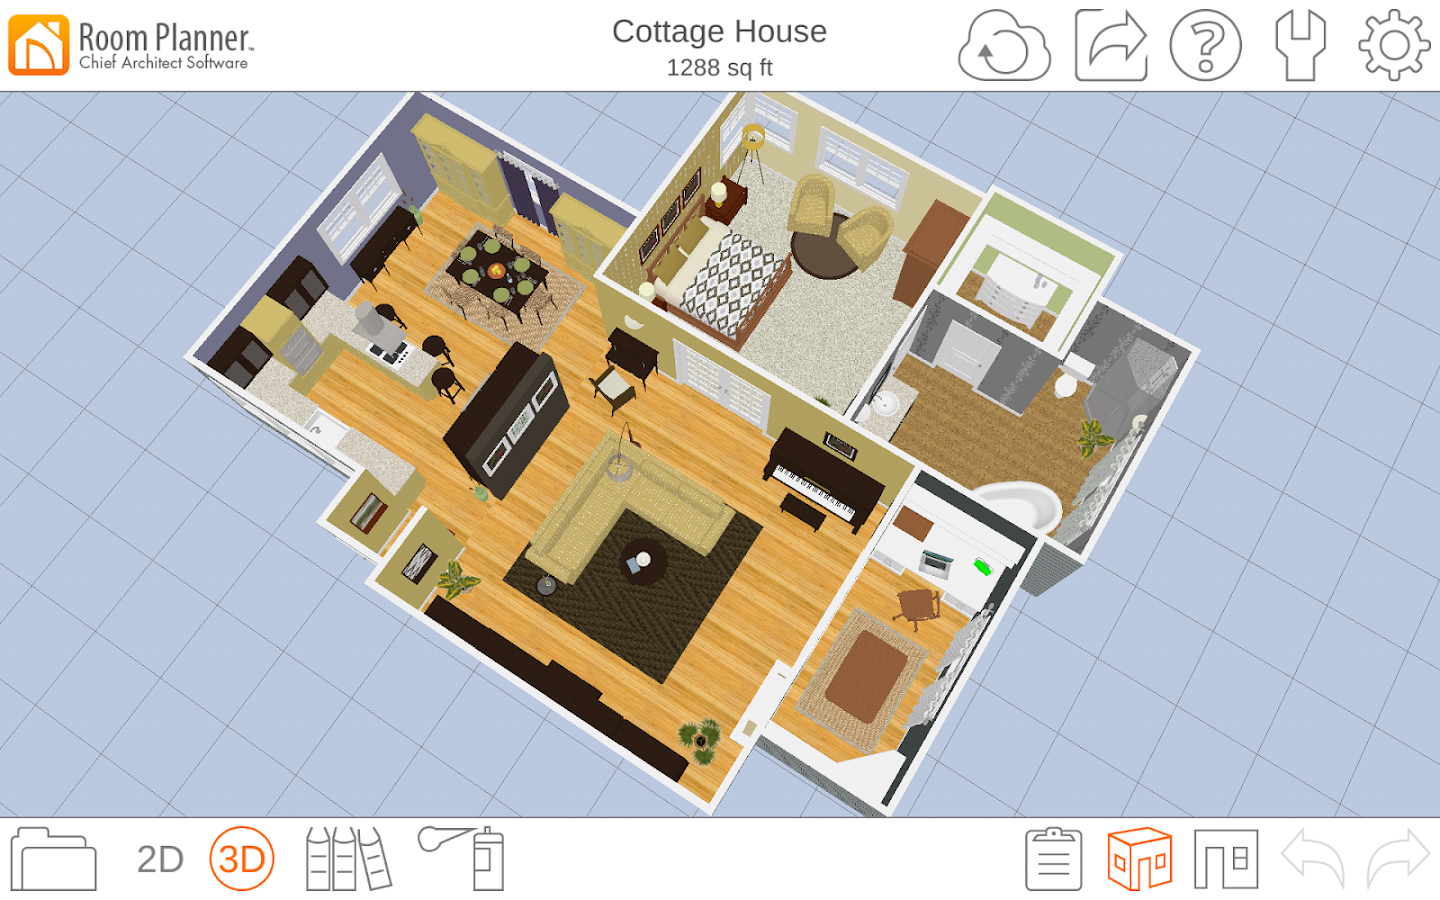 Room planner home design android apps on google play for Home layout planner